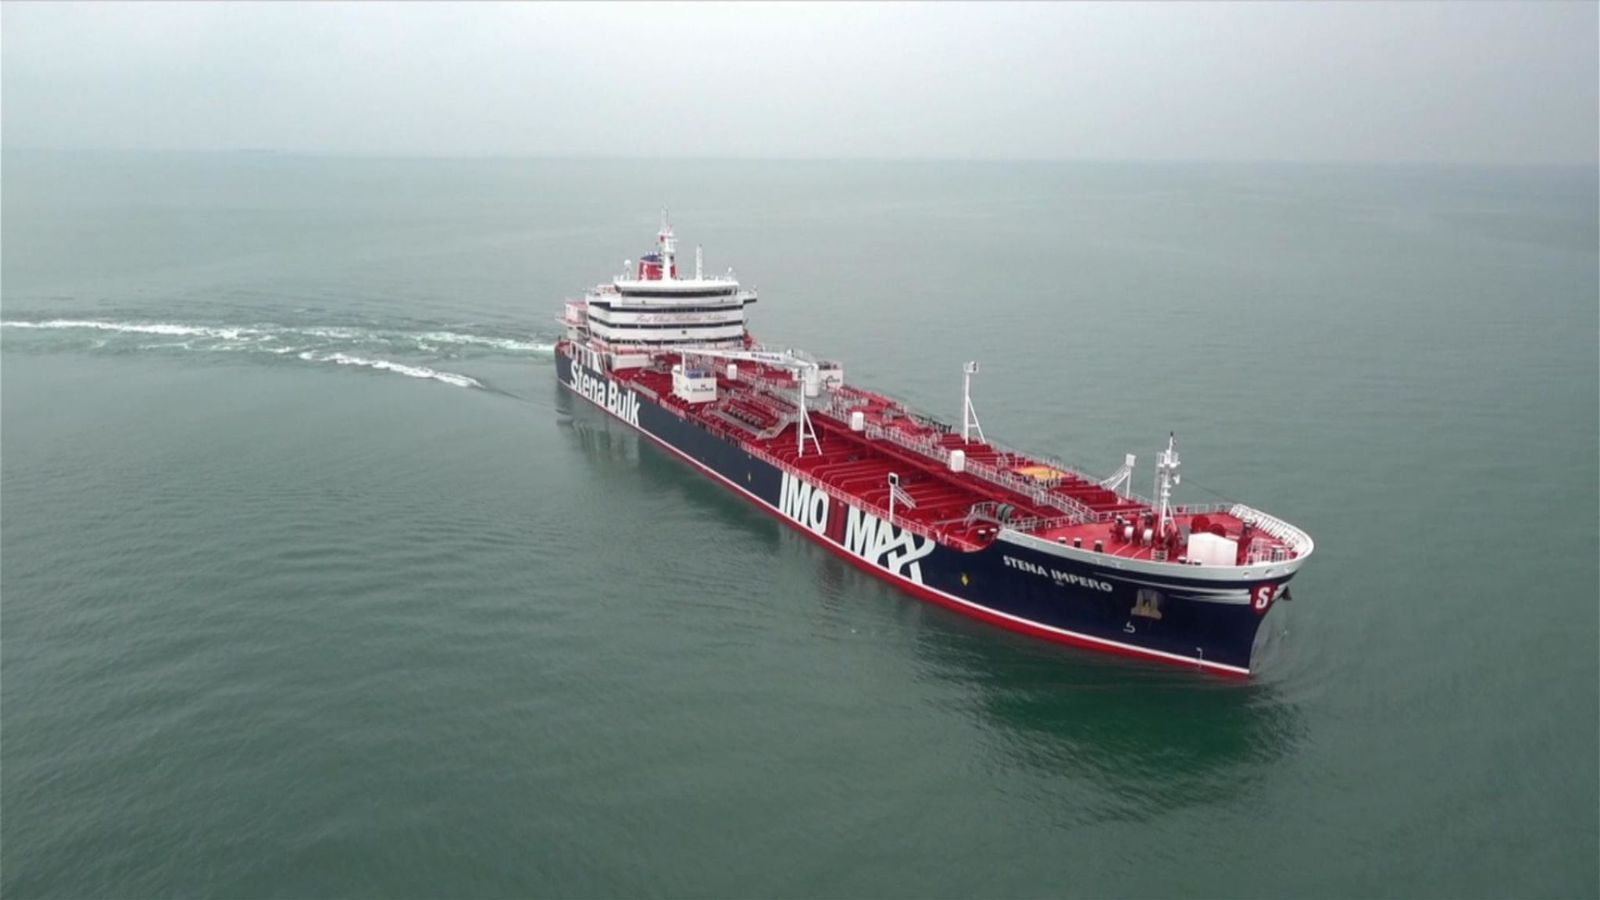 British Oil Tanker Stena Impero Detained by Iran, Taken to Port of Bandar Abbas